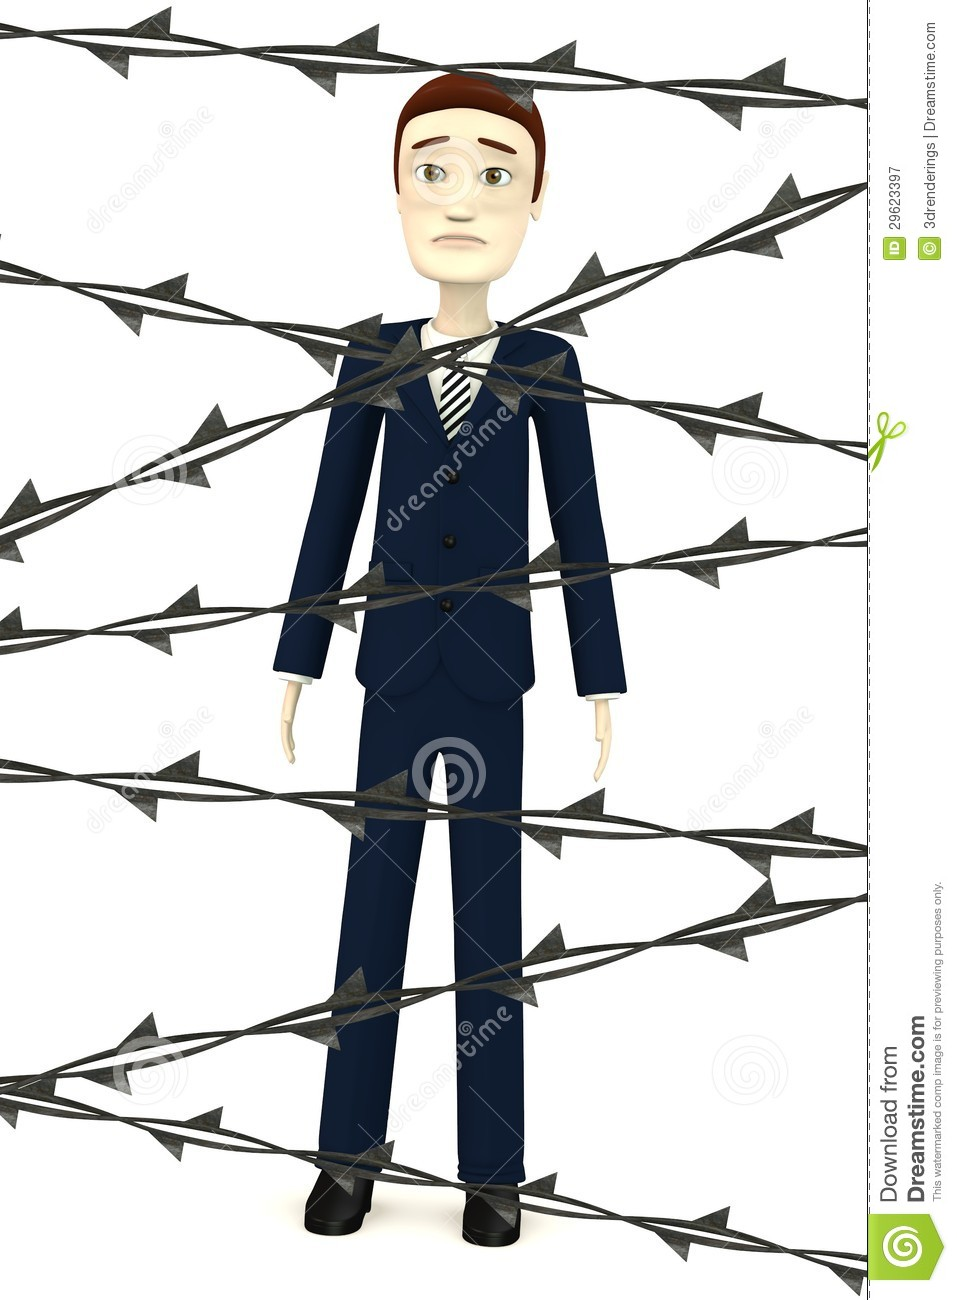 Cartoon businessman with barbed wire royalty free stock